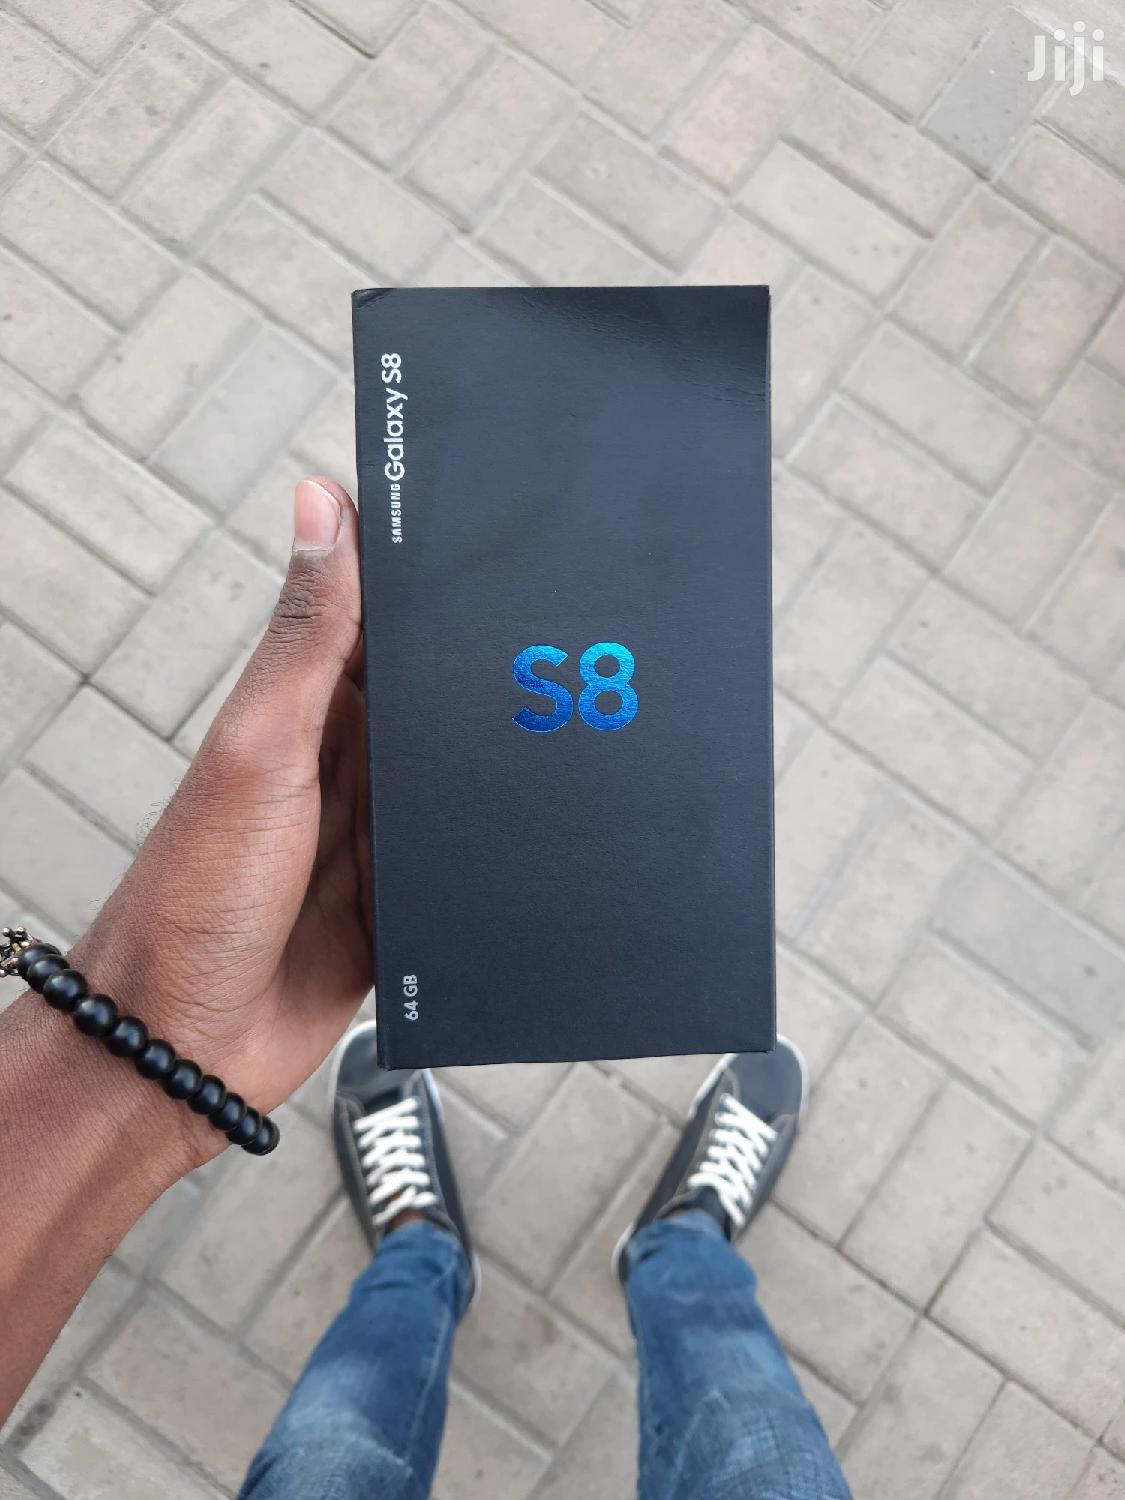 Archive: New Samsung Galaxy S8 64 GB Black